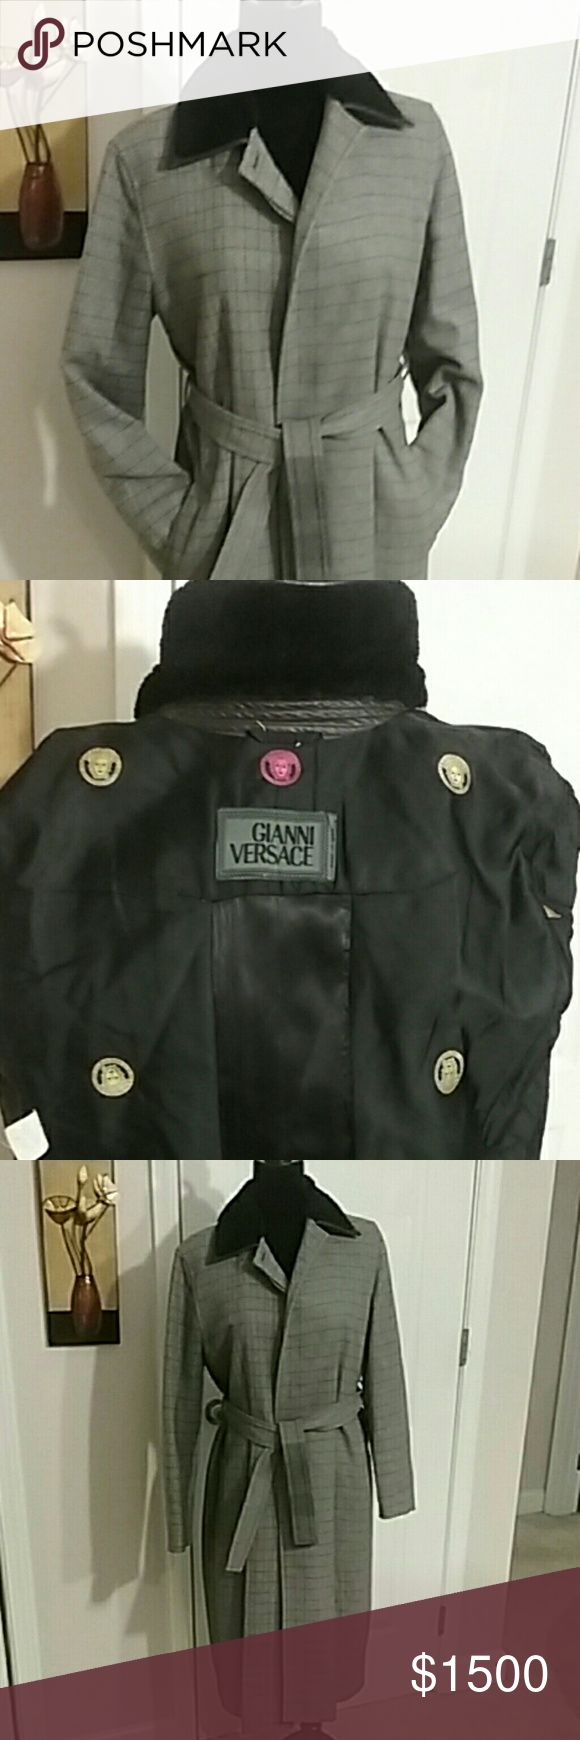 ANNOUNCING SOON  TO COME /GIANNI VERSACE COAT Gently used women's Beautiful Gianni Versace coat  SORRY HAVE NO SIZE LABEL INSIDE  The buttons are missing but  when wrapped is not noticeable The neck have leather and fur  Open to reasonable offers  thank you for stopping by Ginger  Thanks for sharing and likes GIANNI VERSACE COAT Jackets & Coats